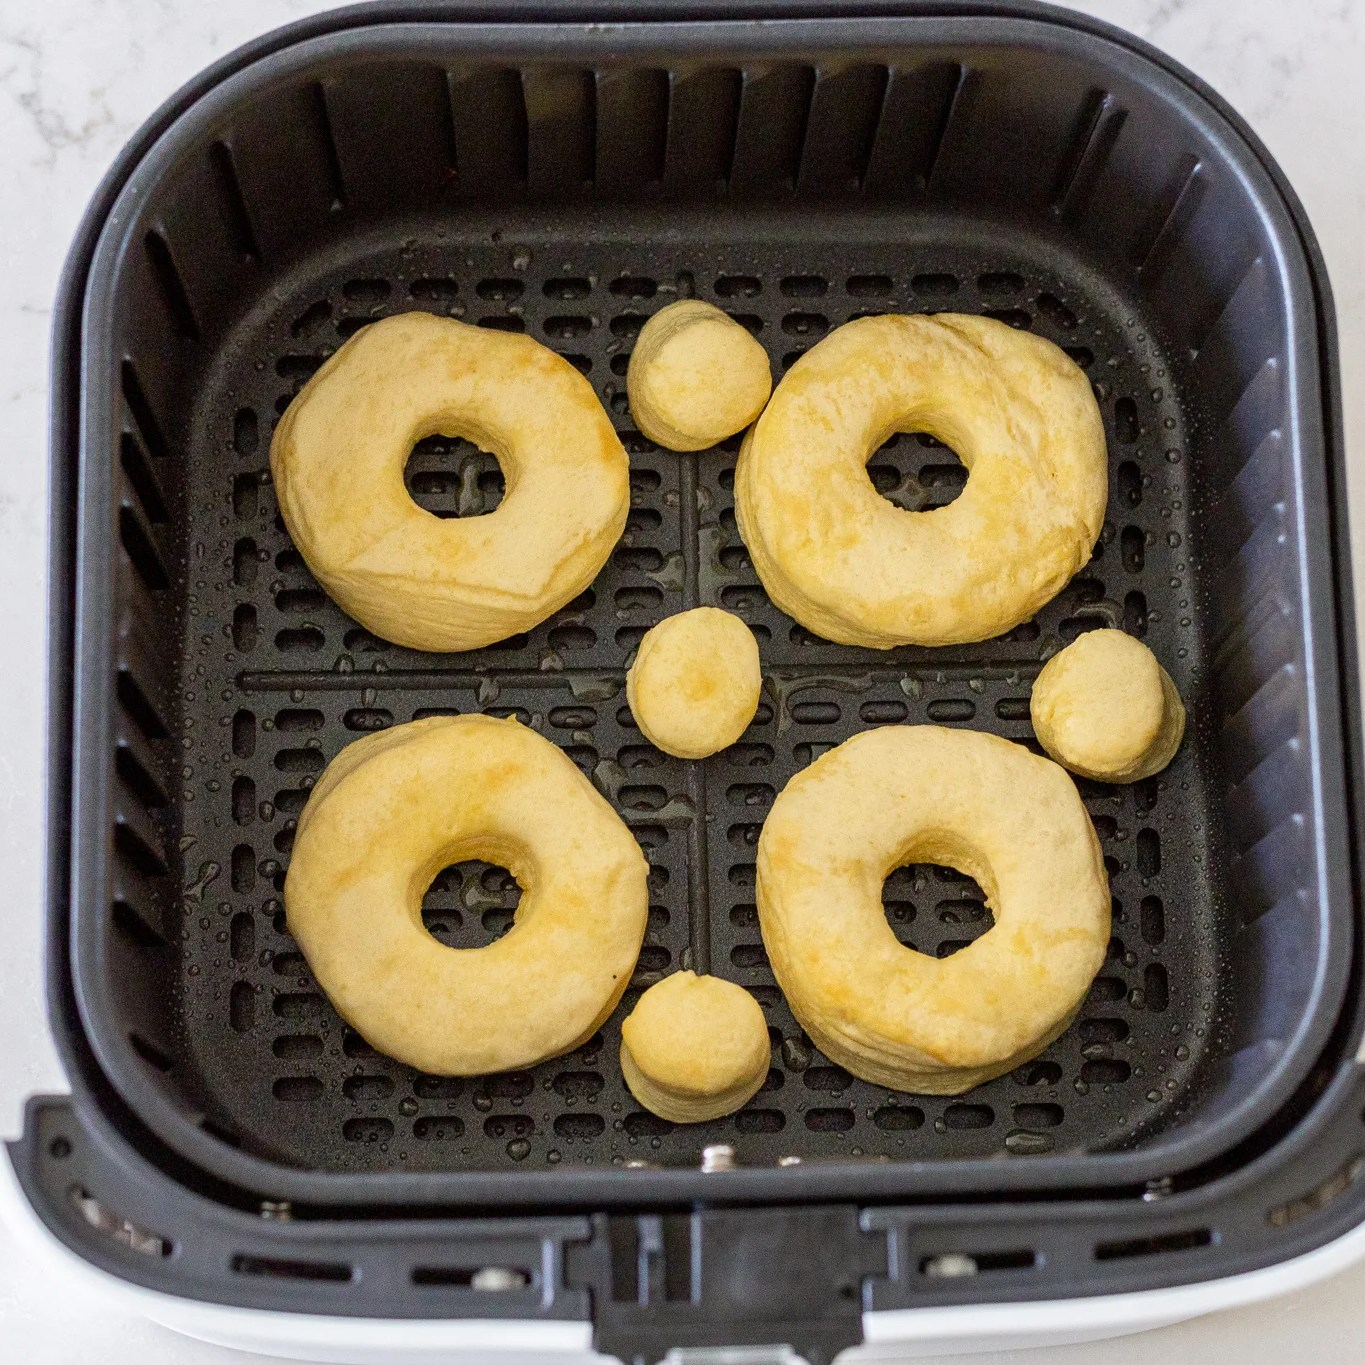 Donuts in an airfryer basket